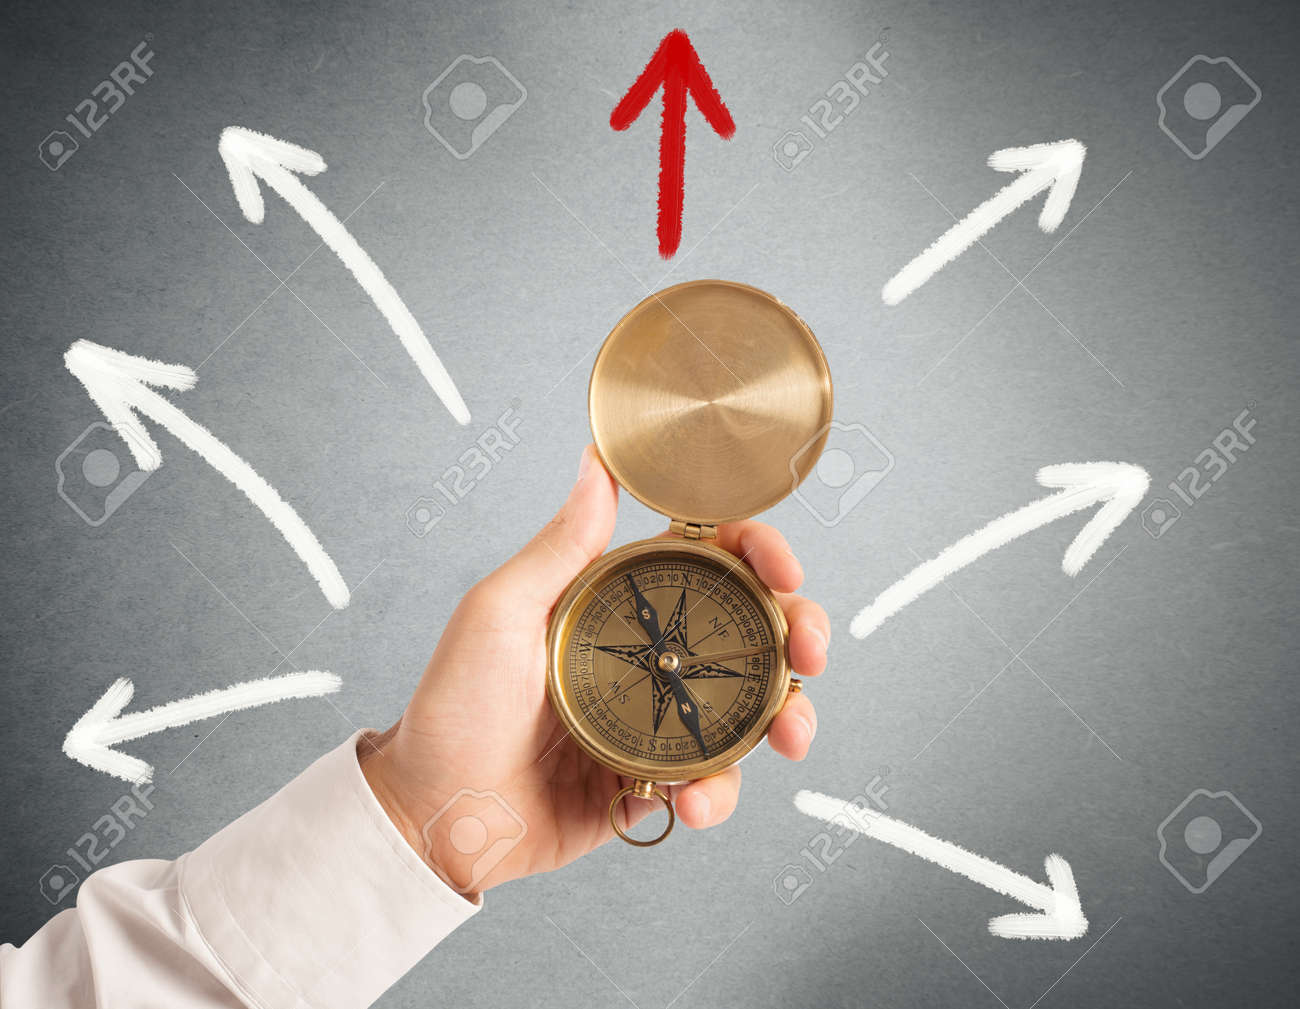 Businessman with compass looking for the correct way Stock Photo - 27014280